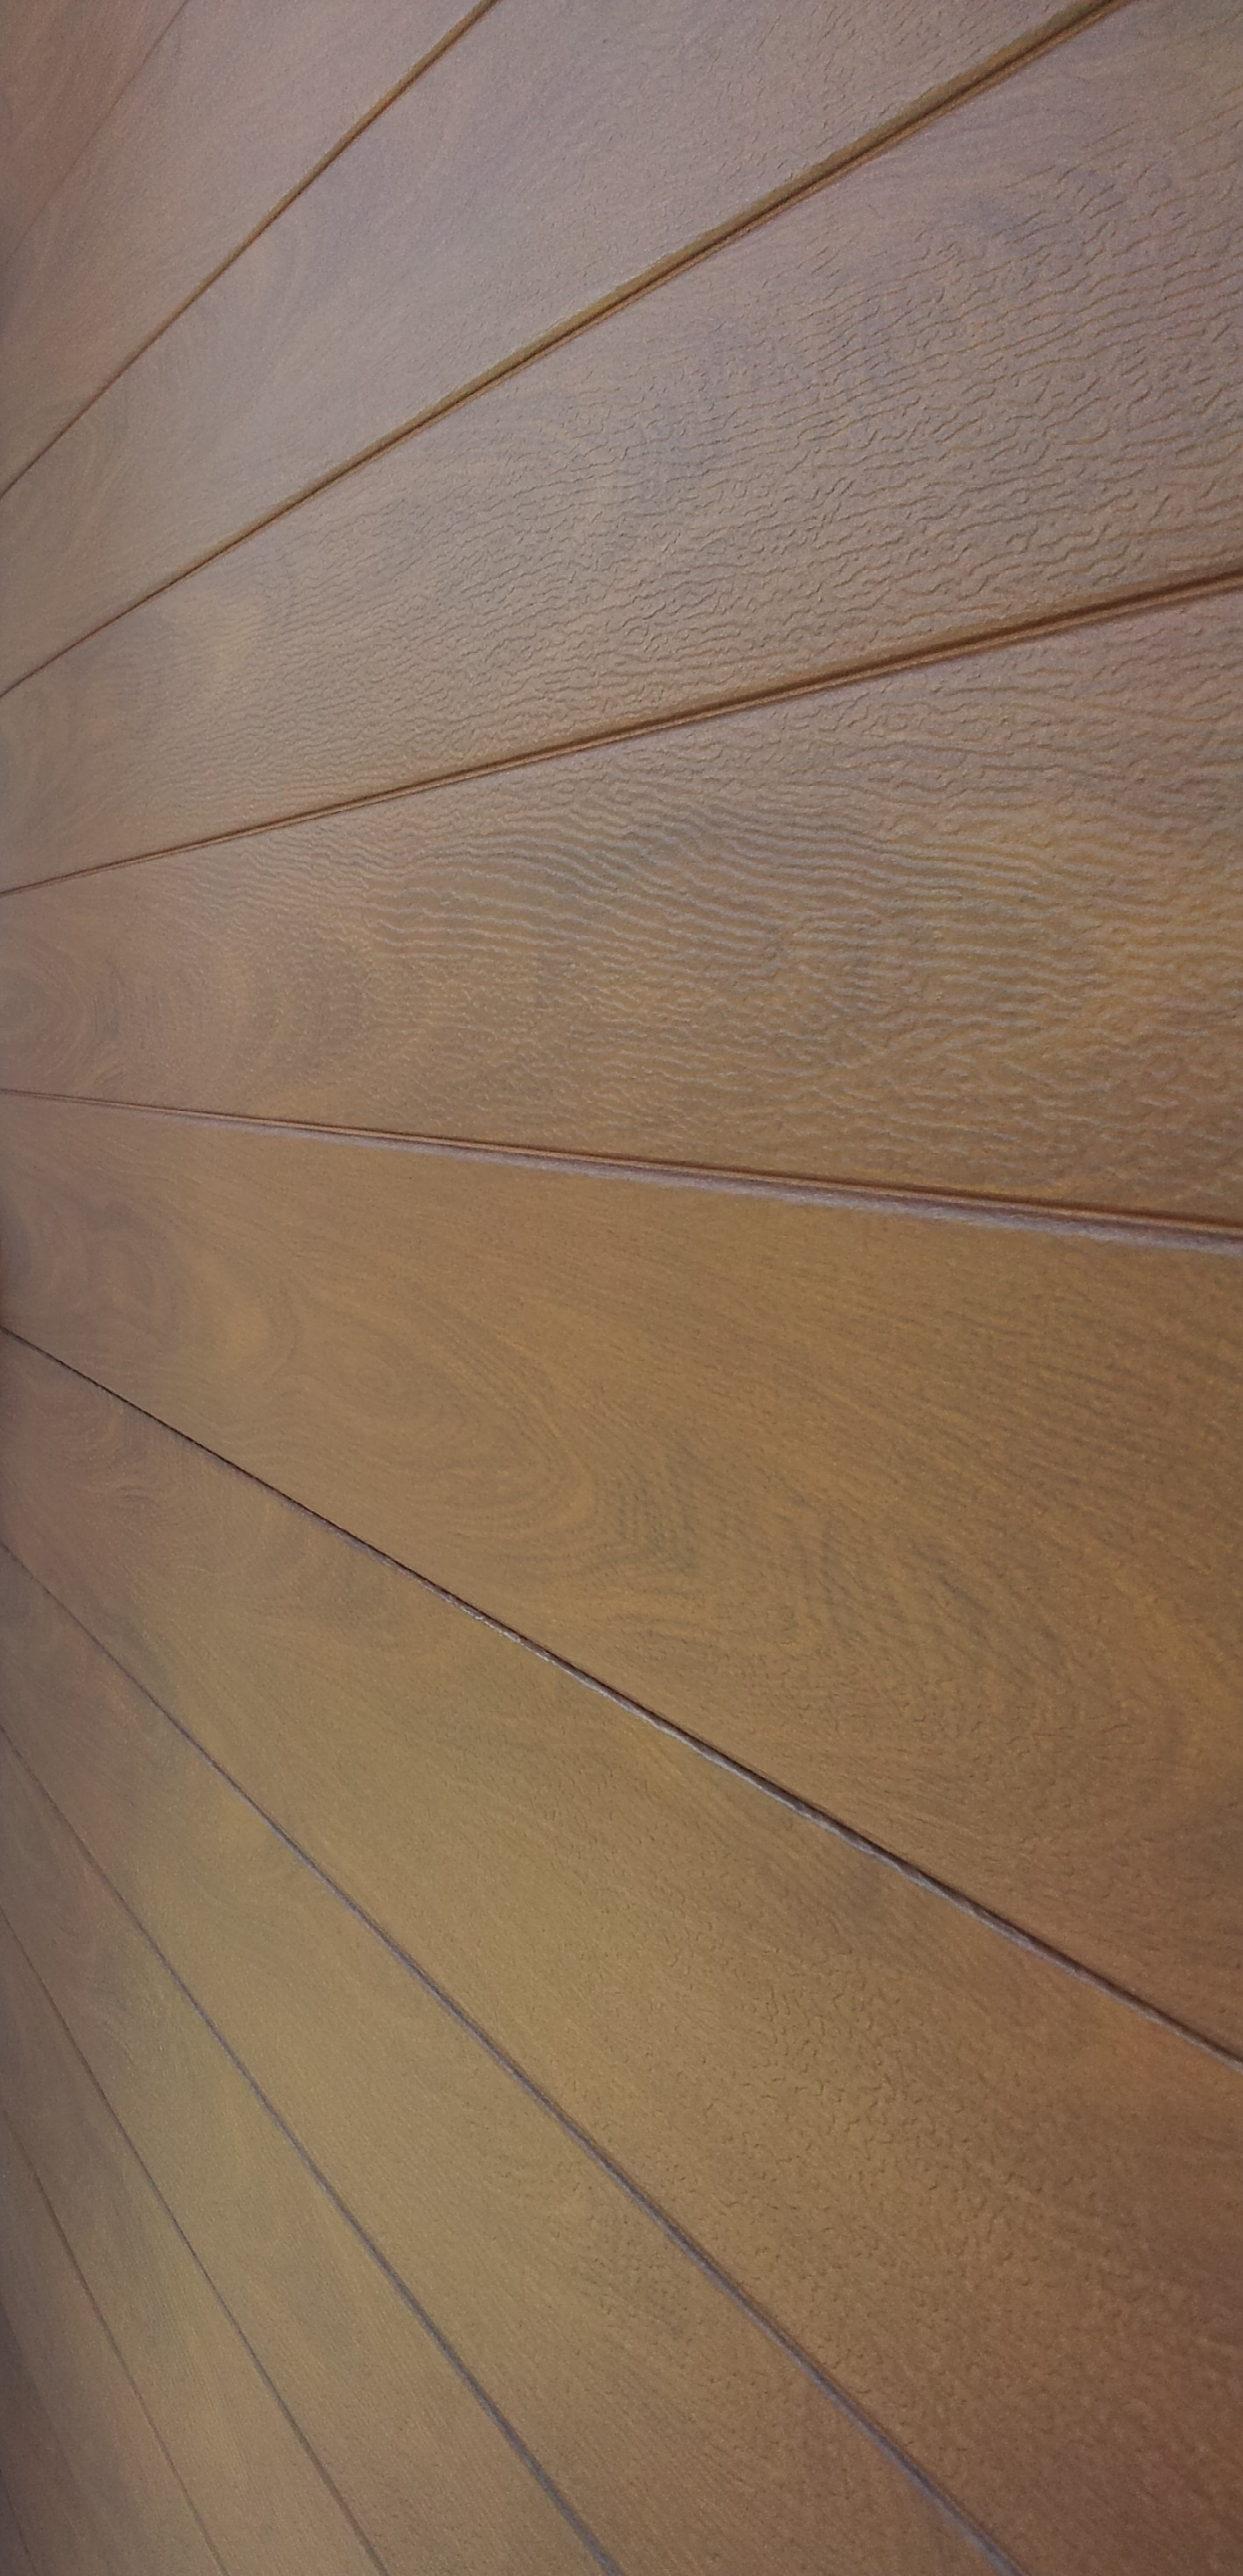 close up of woodgrain embossing (click on image to enlarge)